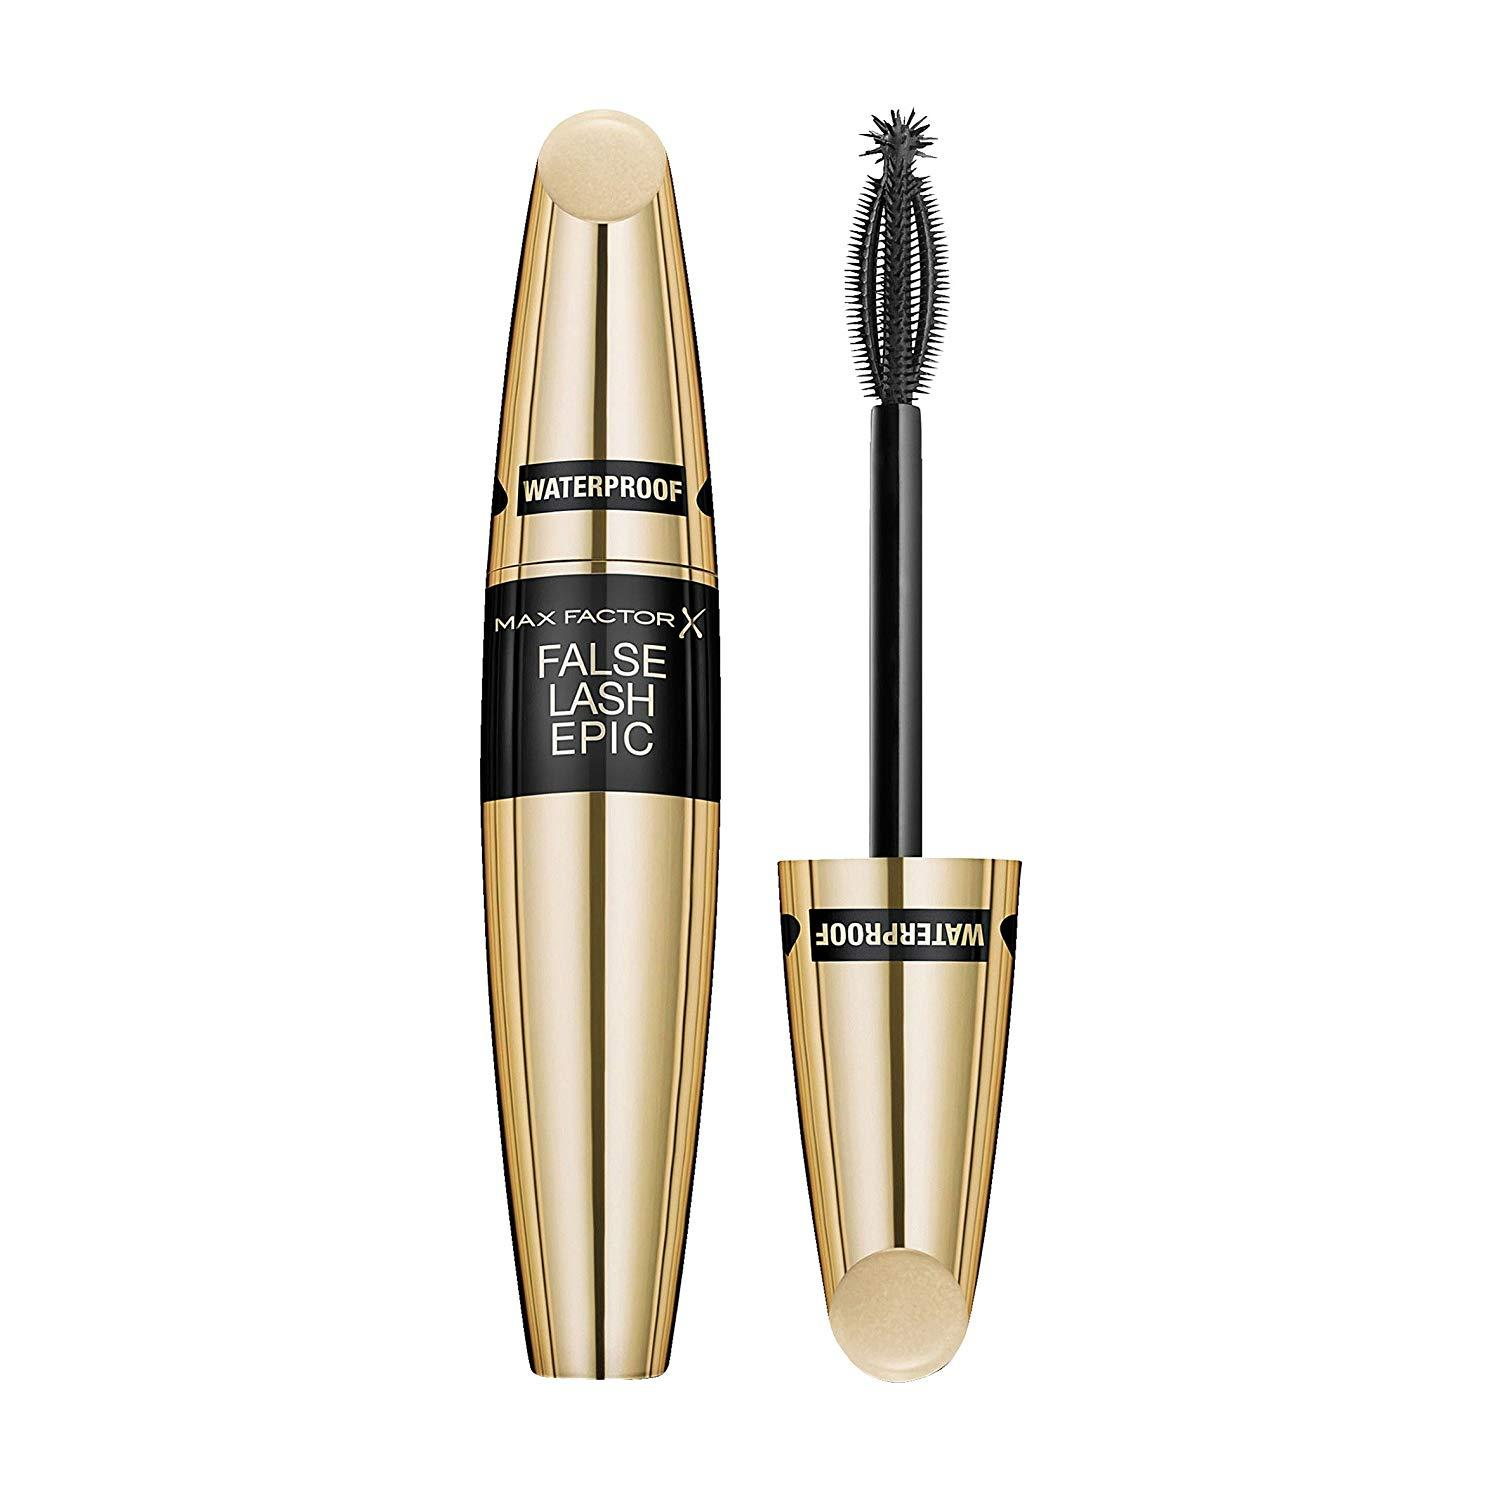 Max Factor Epic False Lash Effect Mascara Waterproof, 27 G